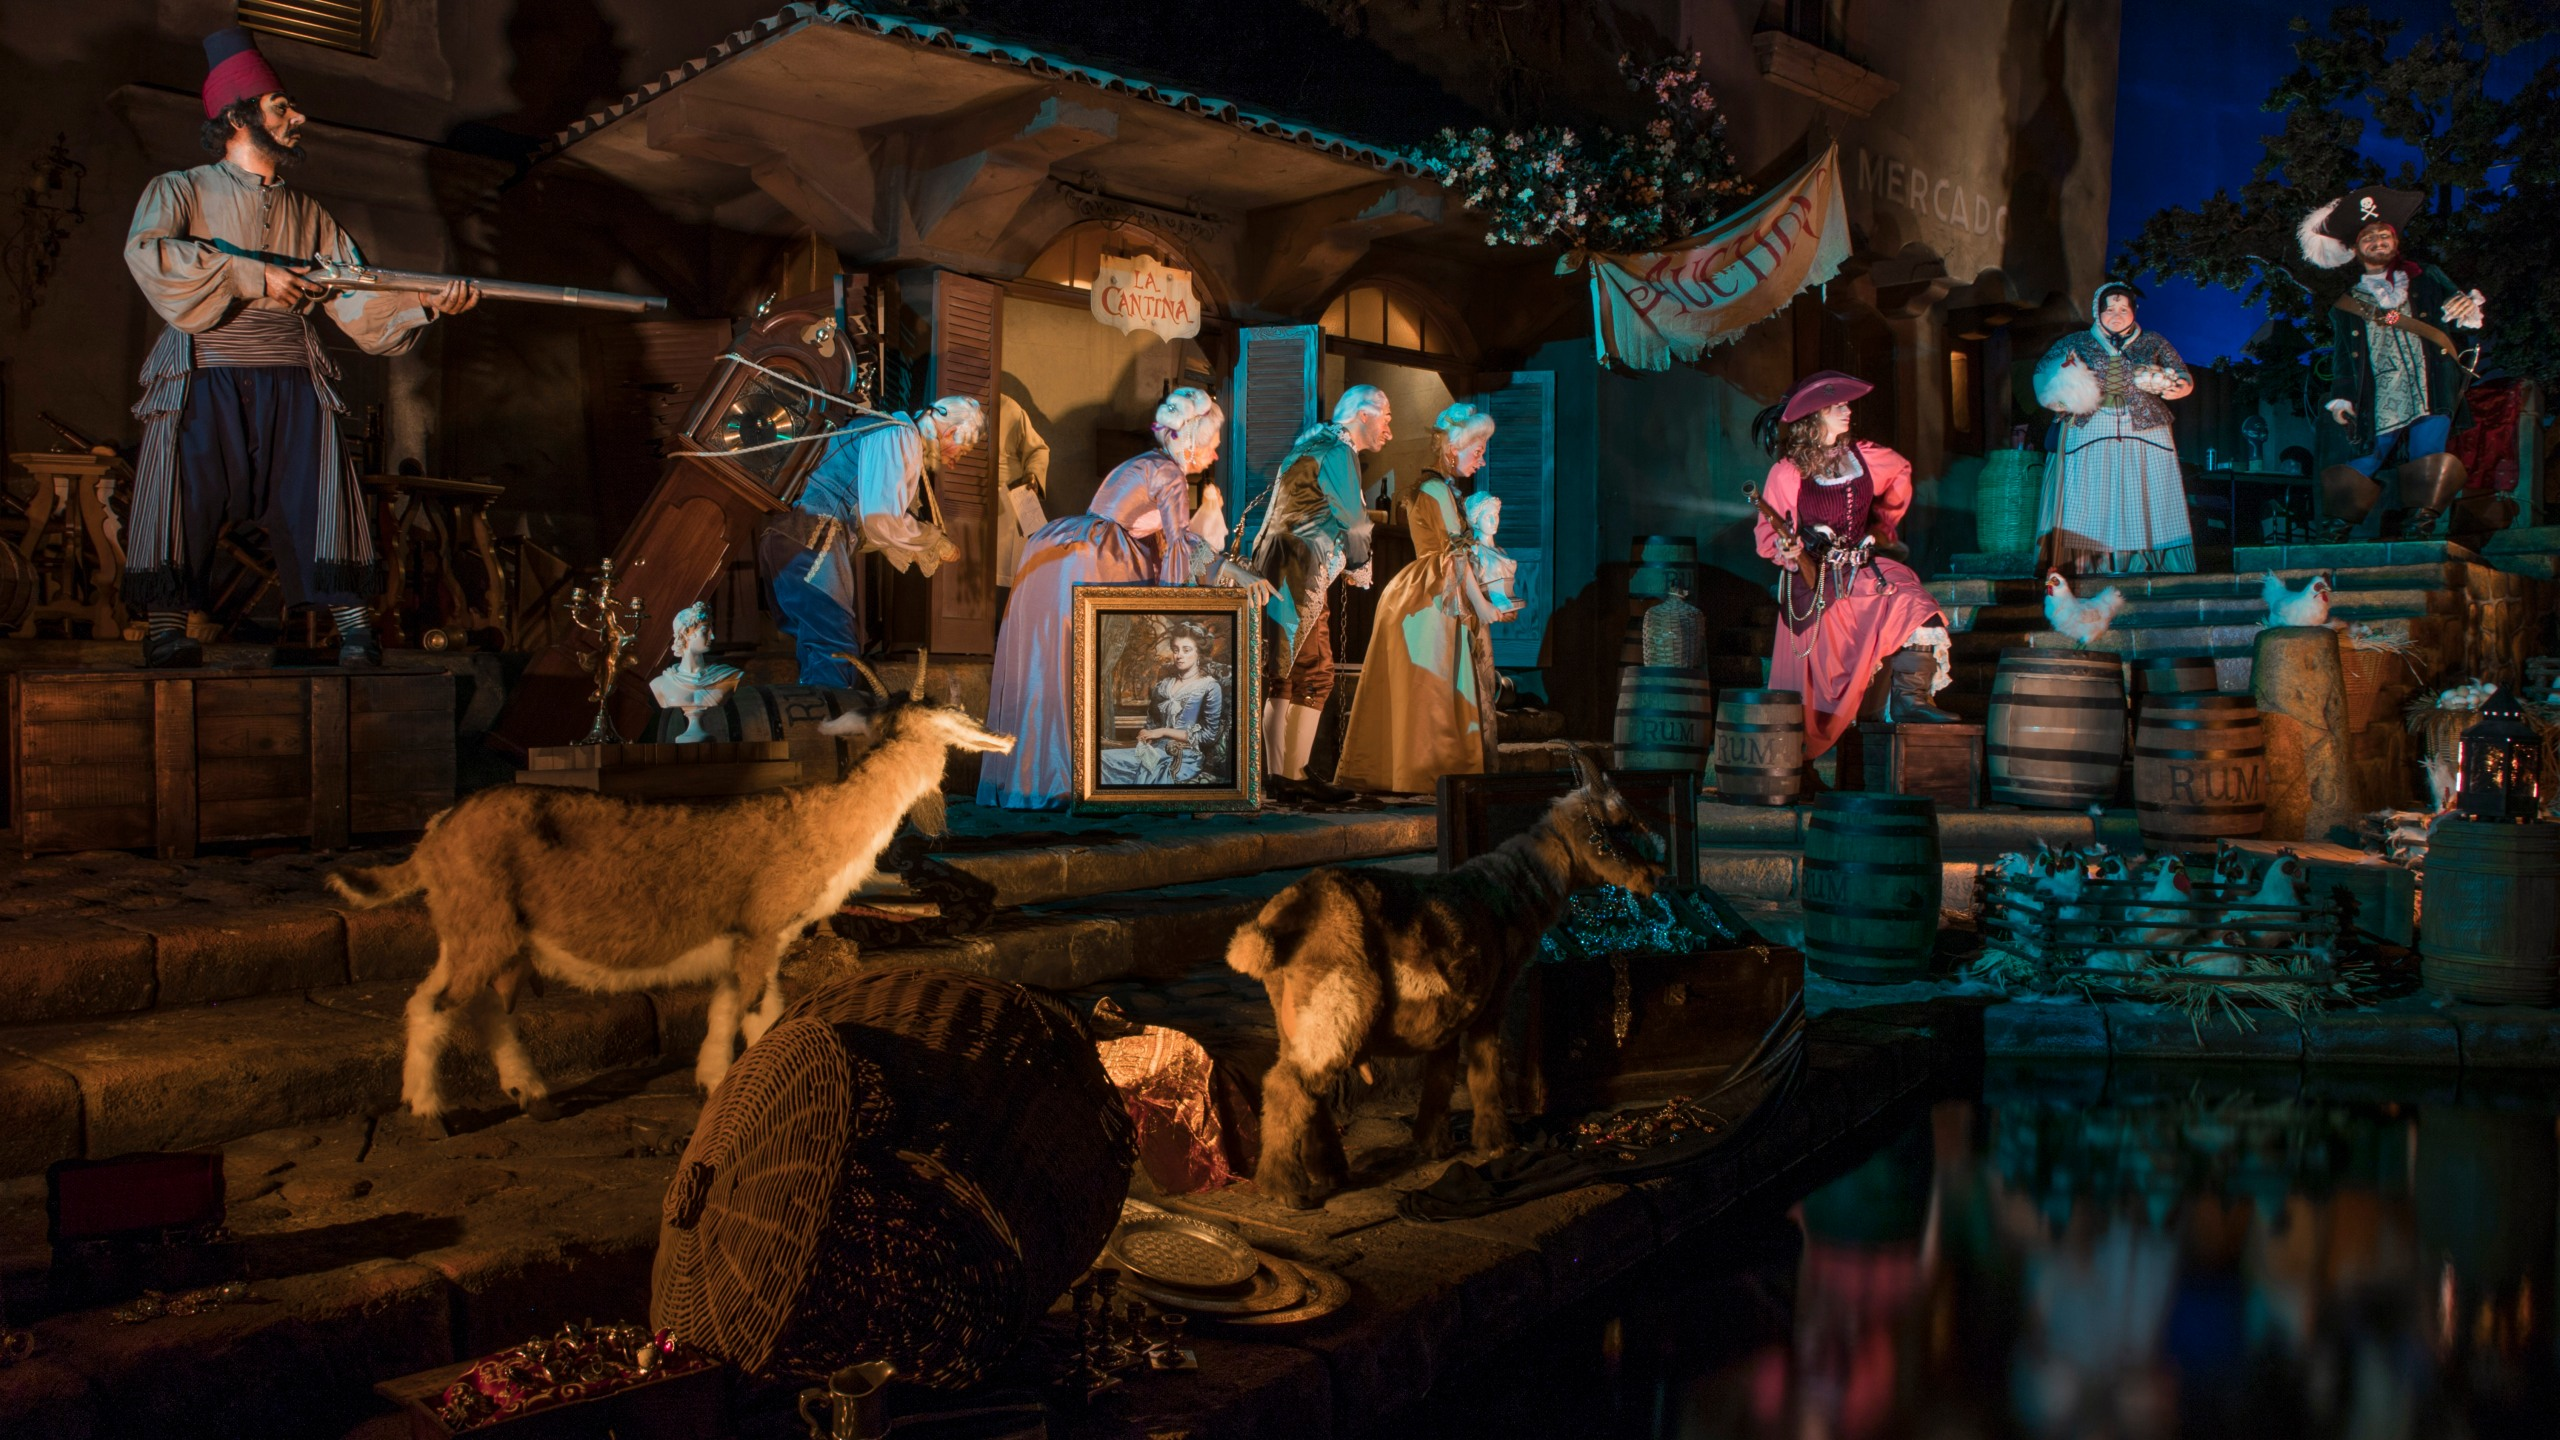 """An image provided by Disney on July 8, 2018 shows a scene from the newly reopened Pirates of the Caribbean ride, which now features a female character named Redd who """"switched sides to become a pirate who's pillaged the town's rum supply. (Credit: Joshua Sudock/Disneyland Resort)"""